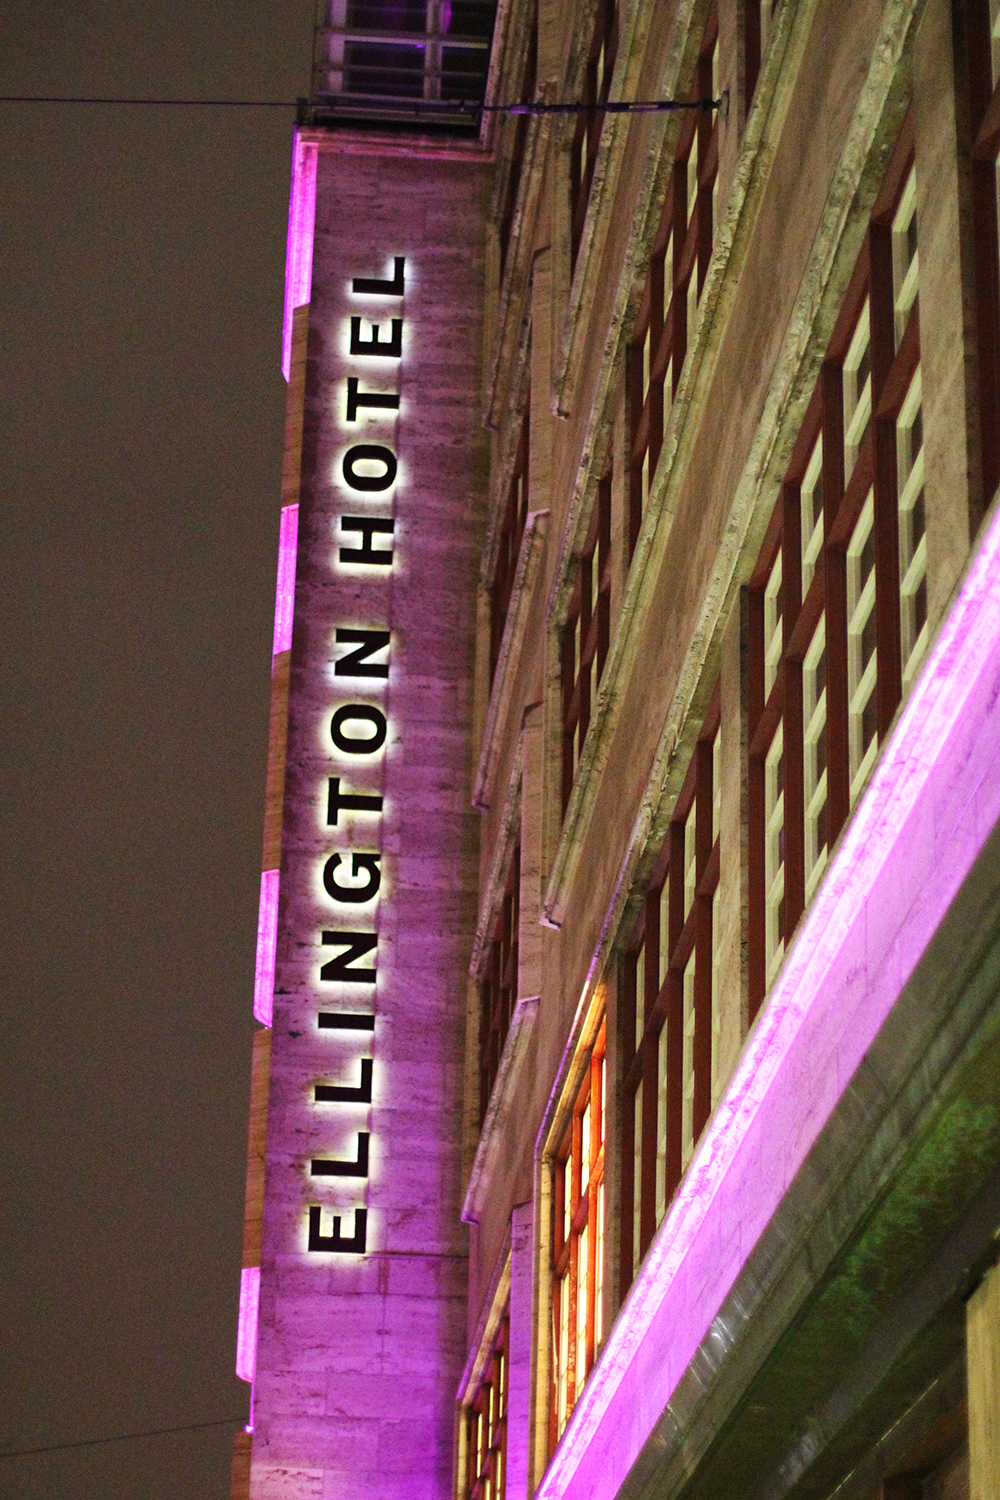 Ellington Hotel at night, Berlin - travel & lifestyle blog